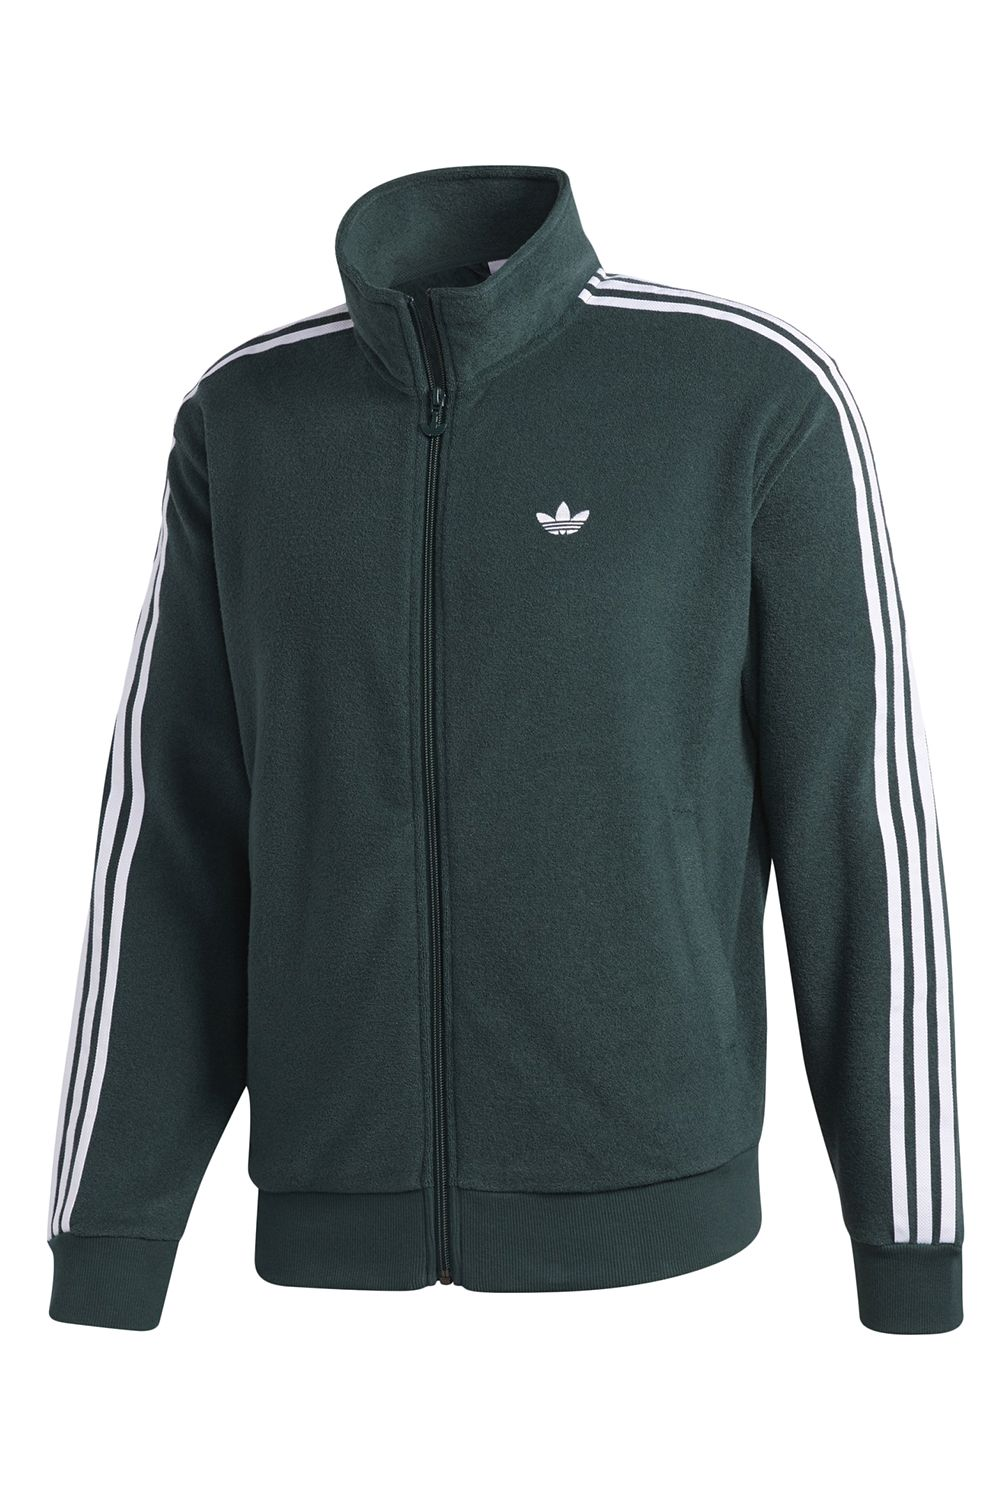 Adidas Coat BOUCLETTE Mineral Green/White